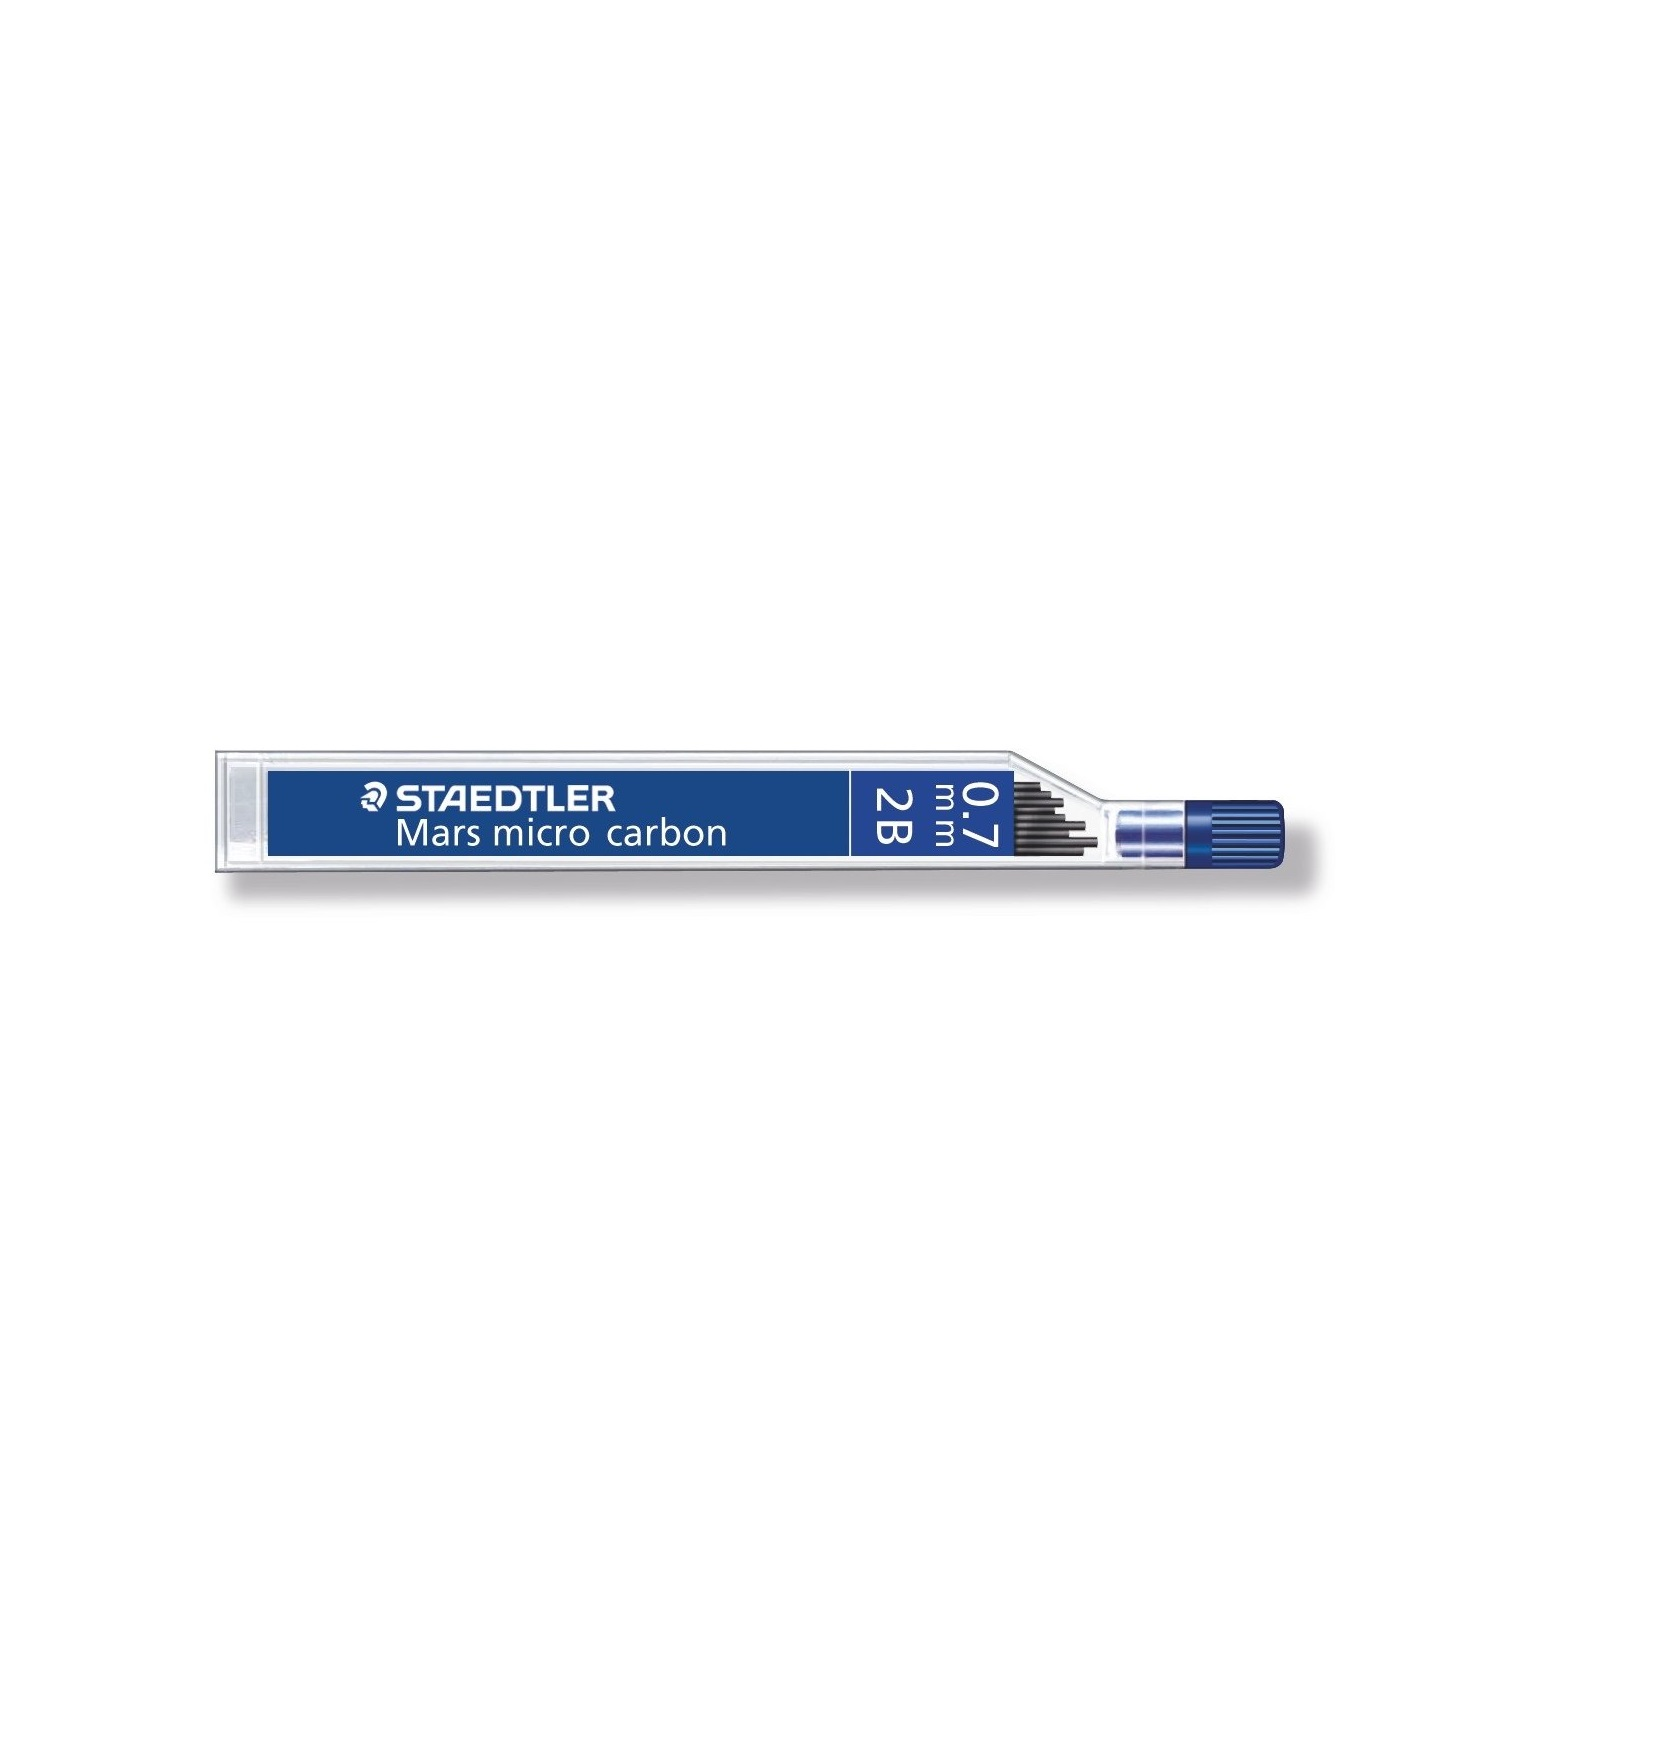 Staedtler Micro Mars Carbon Mechanical Pencil Leads 0.7 mm, 2B